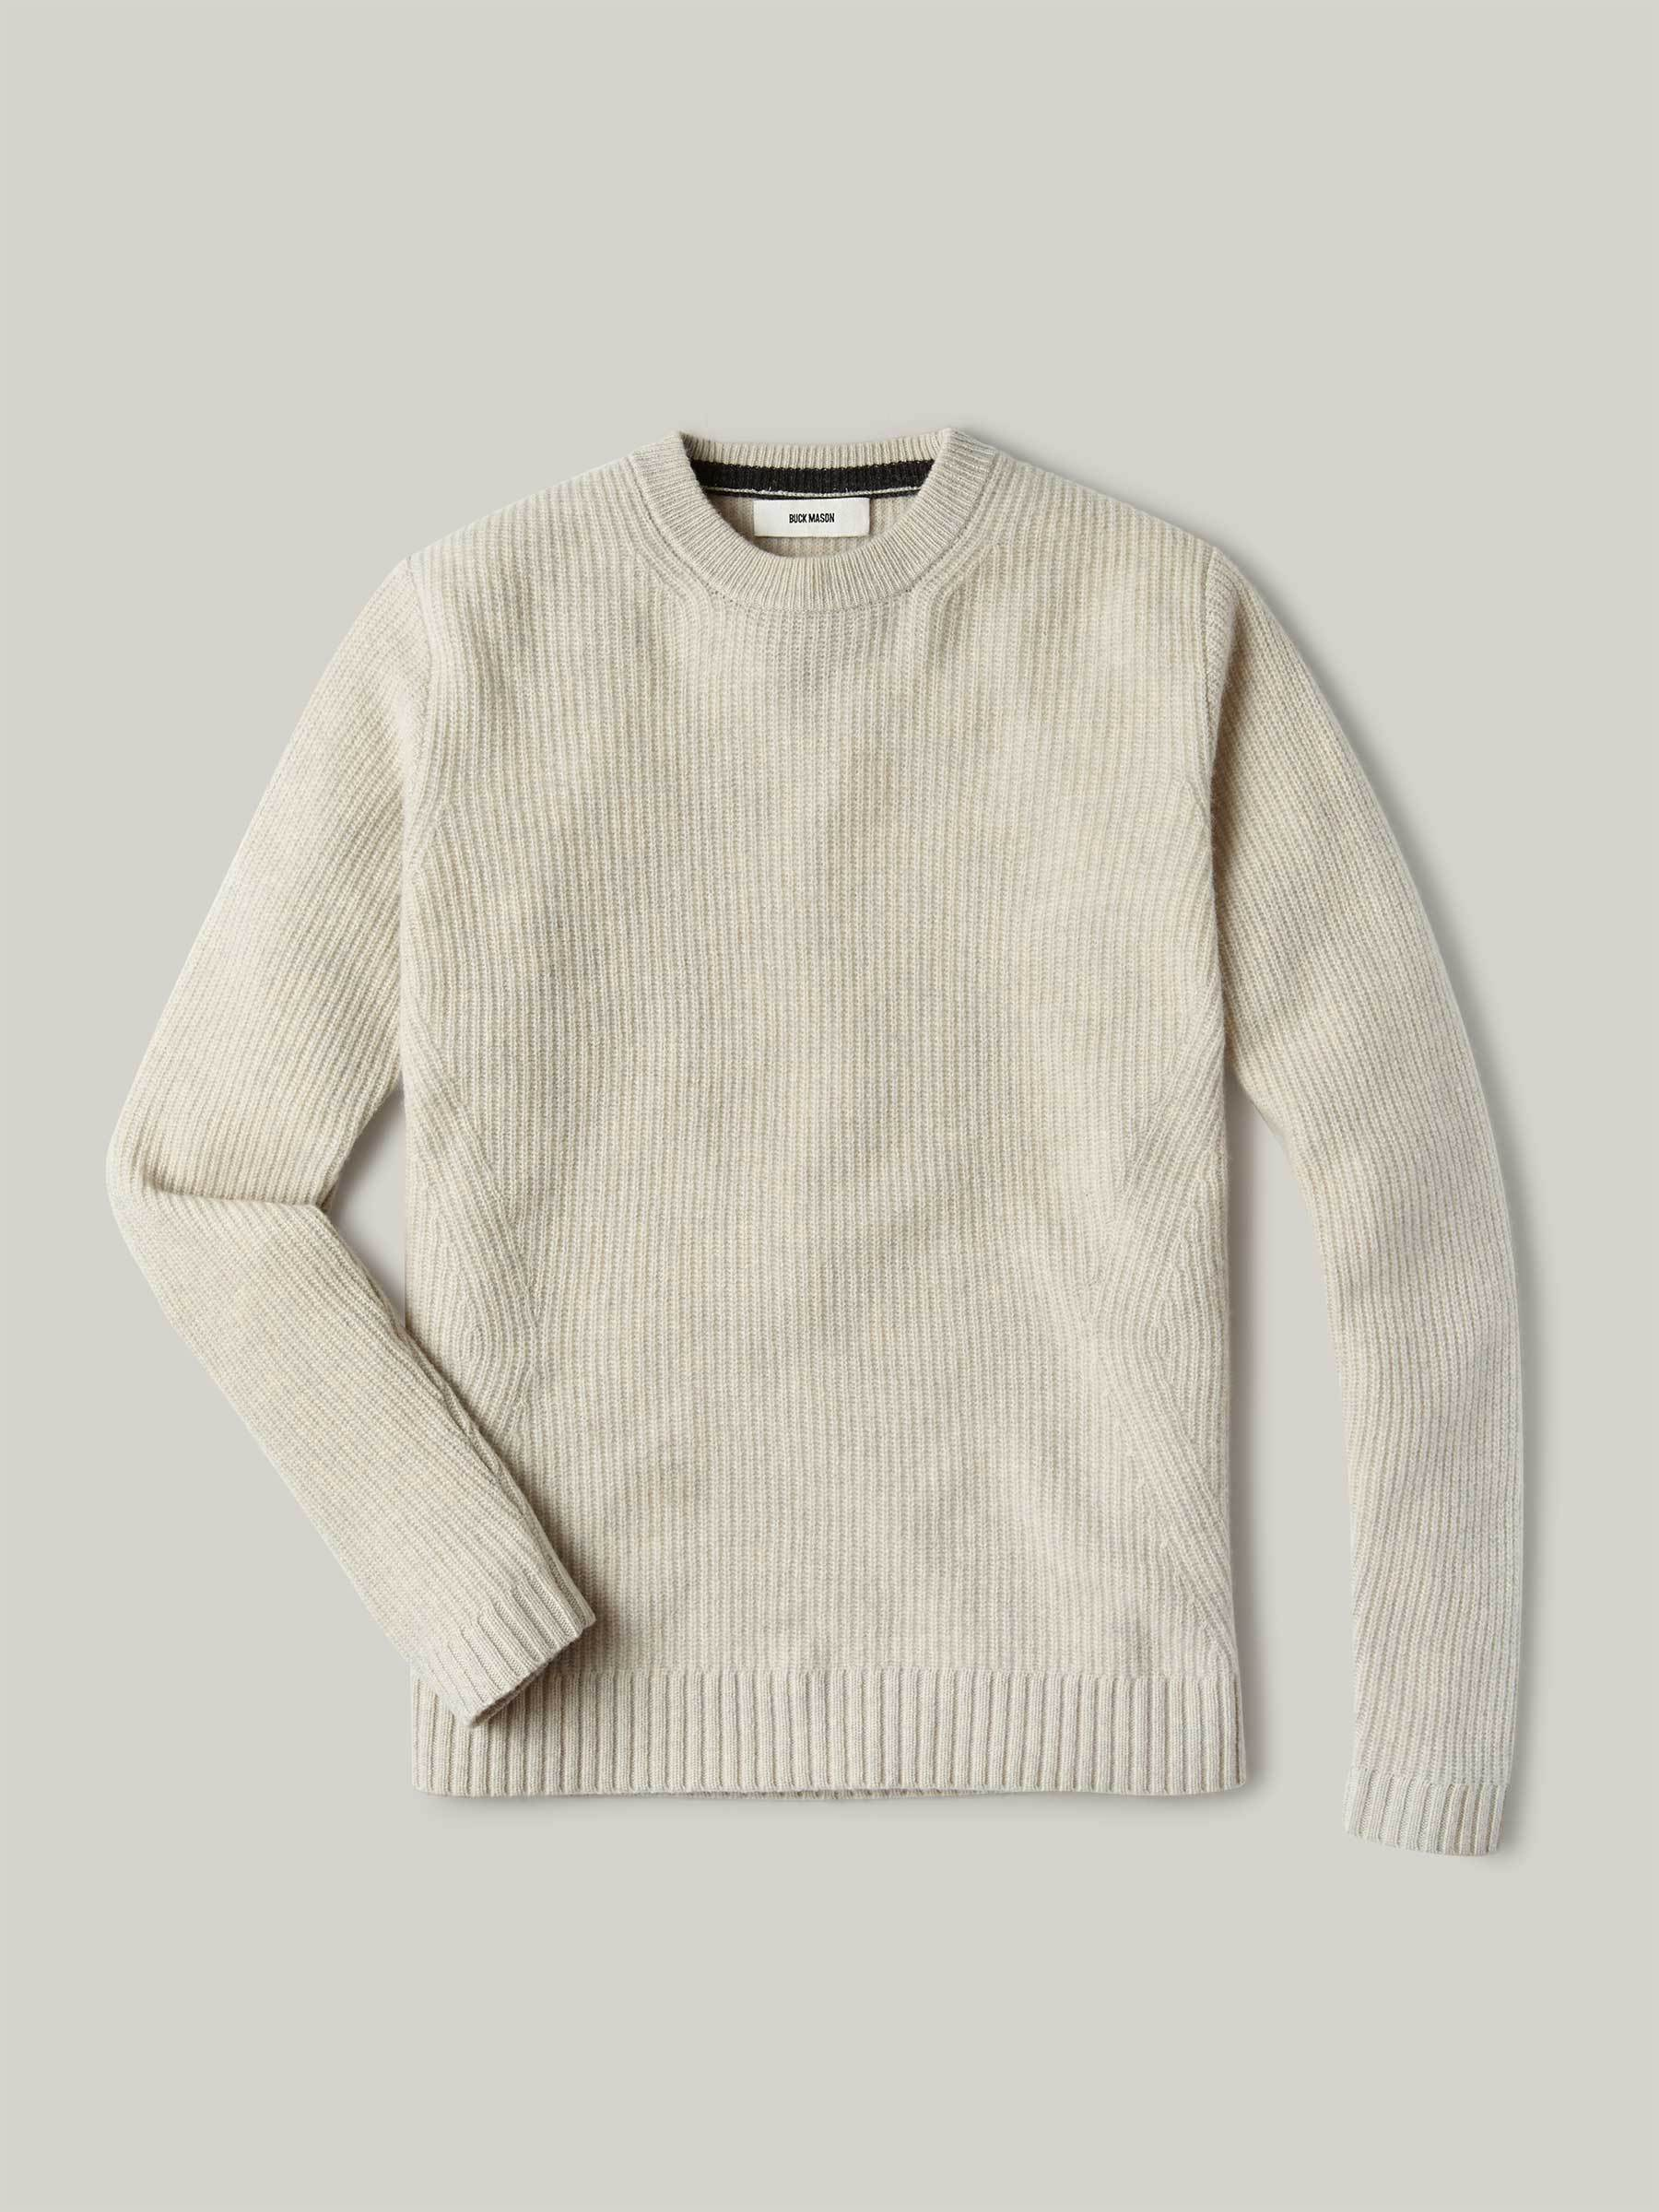 Buck Mason - Natural Five Gauge Fisherman Rib Sweater